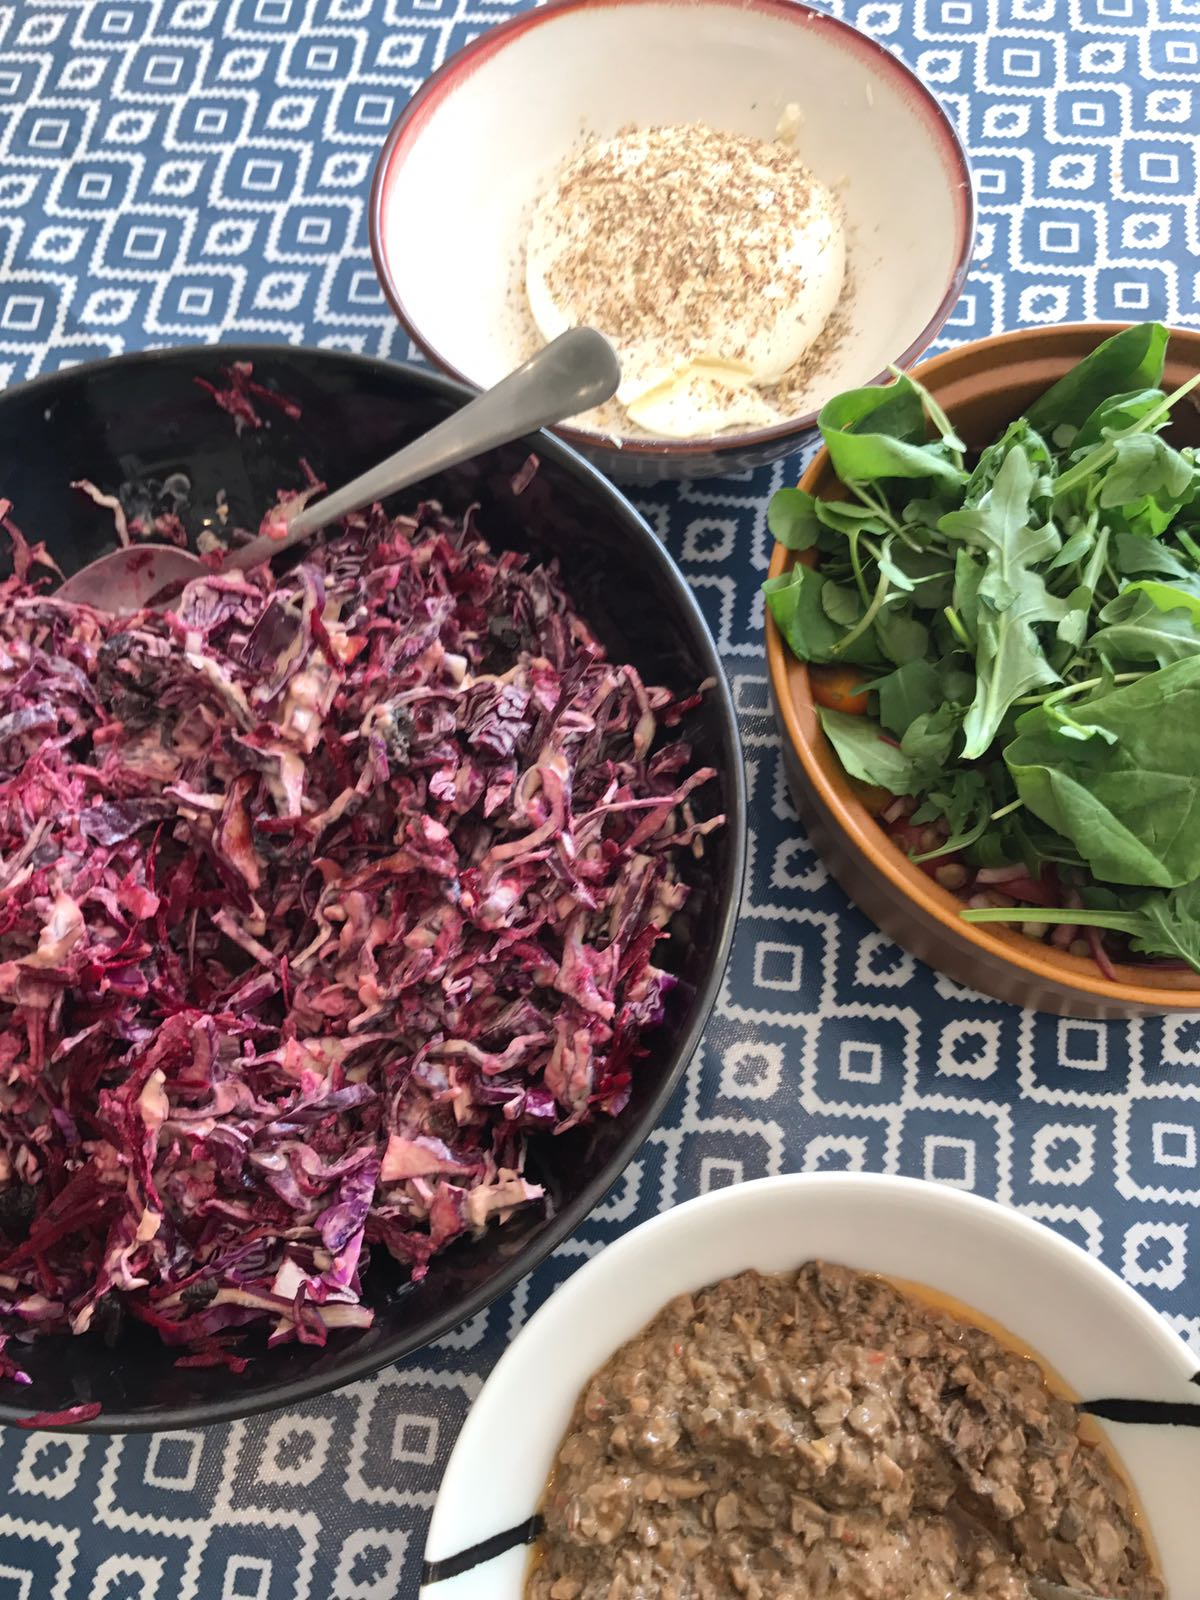 Red Cabbage, Black Olive and Beetroot Coleslaw, Cambodian wedding Day Dip,Labneh and Lentil and Tomato Salad (before I mixed it!)